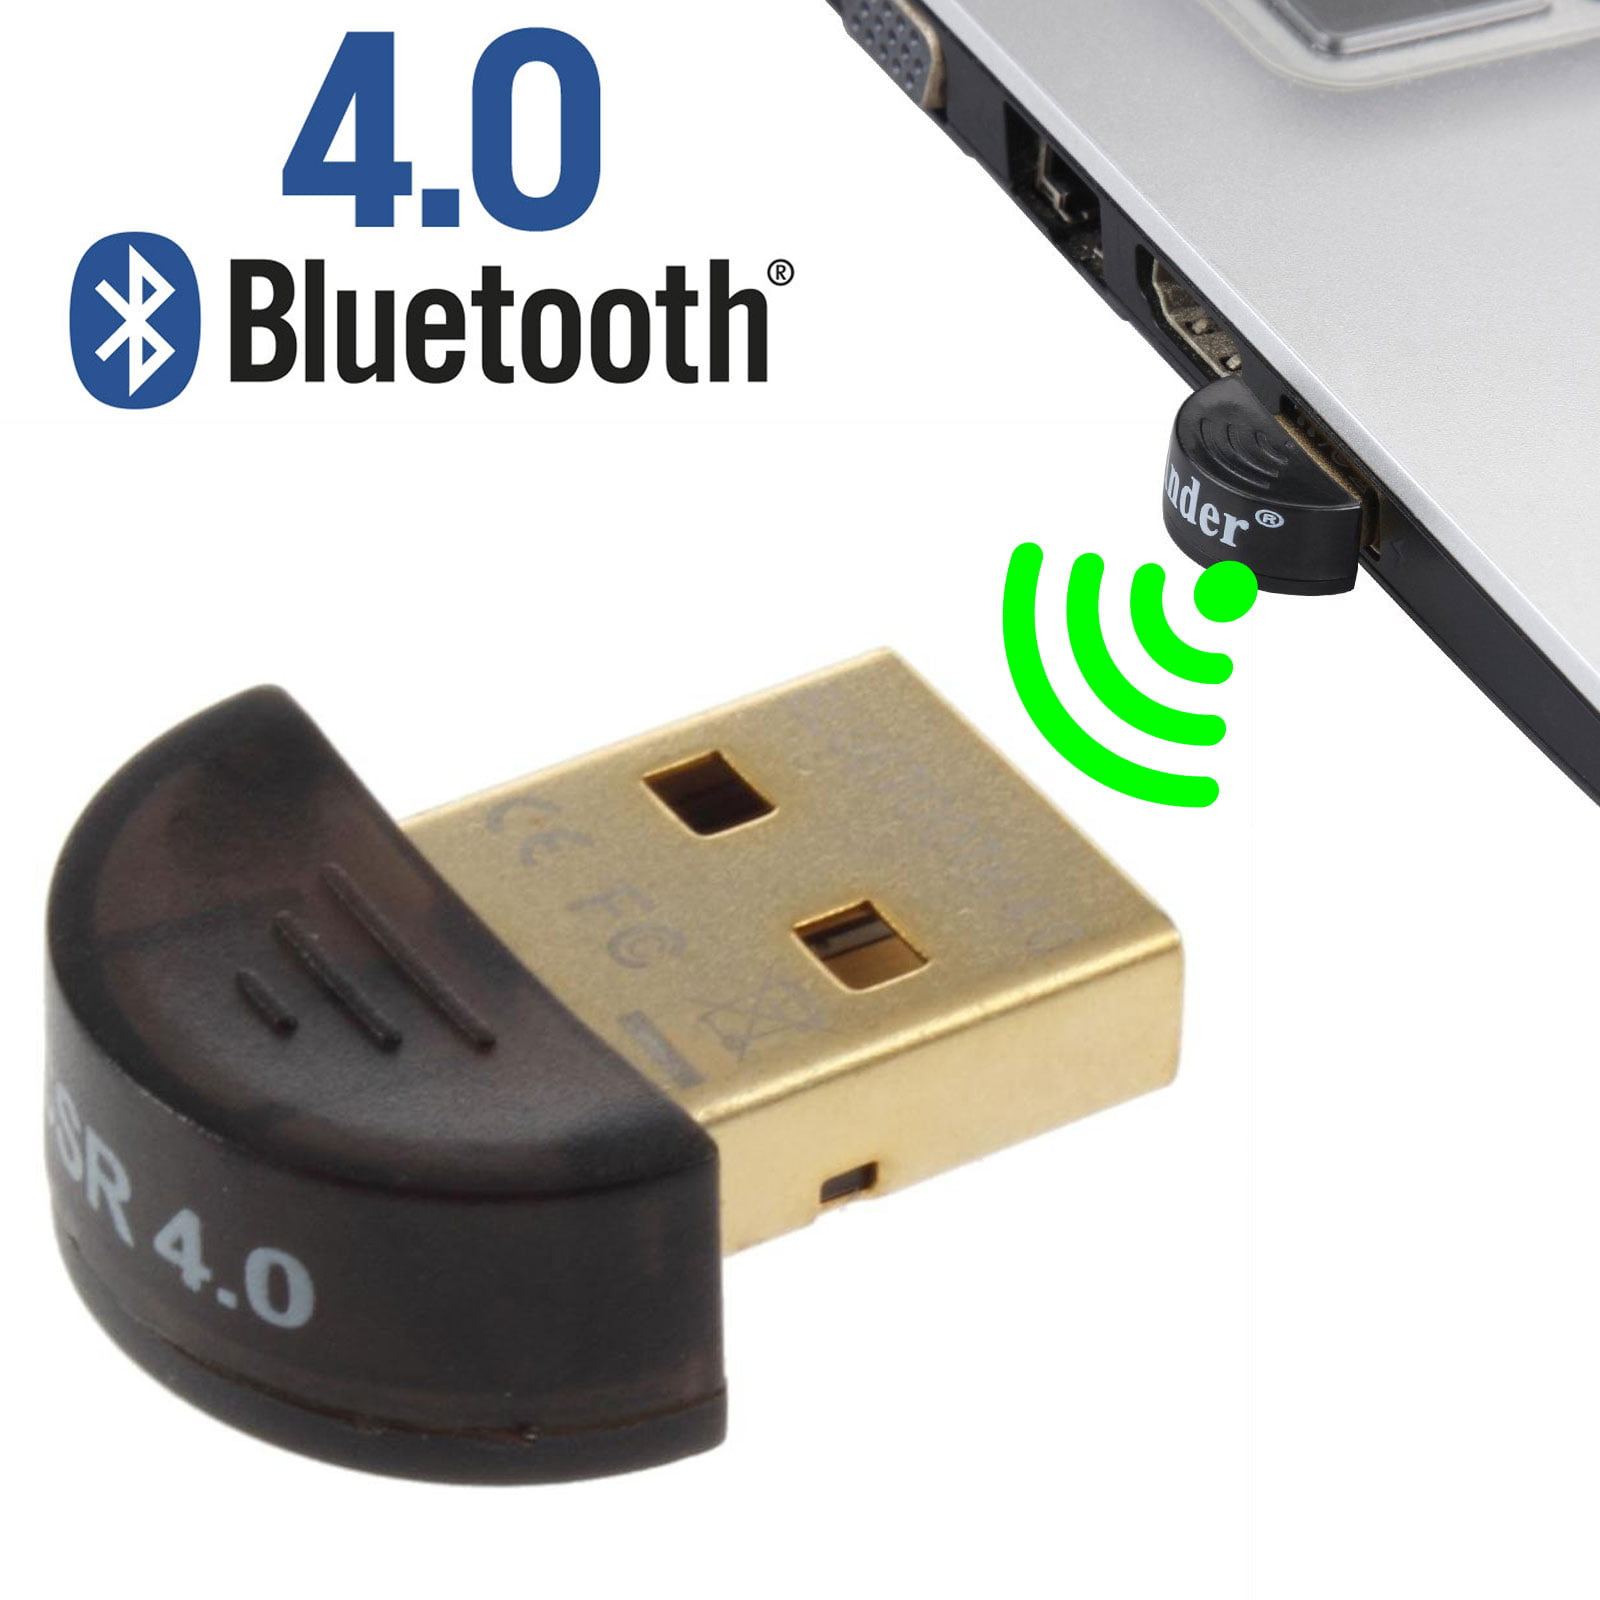 Eeekit Usb Mini Bluetooth 4 0 Csr4 0 Adapter Dongle Bluetooth Receiver Wireless Transfer Adapter For Pc Laptop Bluetooth Headphones Headset Speakers Keyboard Mouse Printer Windows 10 8 1 8 7 Walmart Com Walmart Com